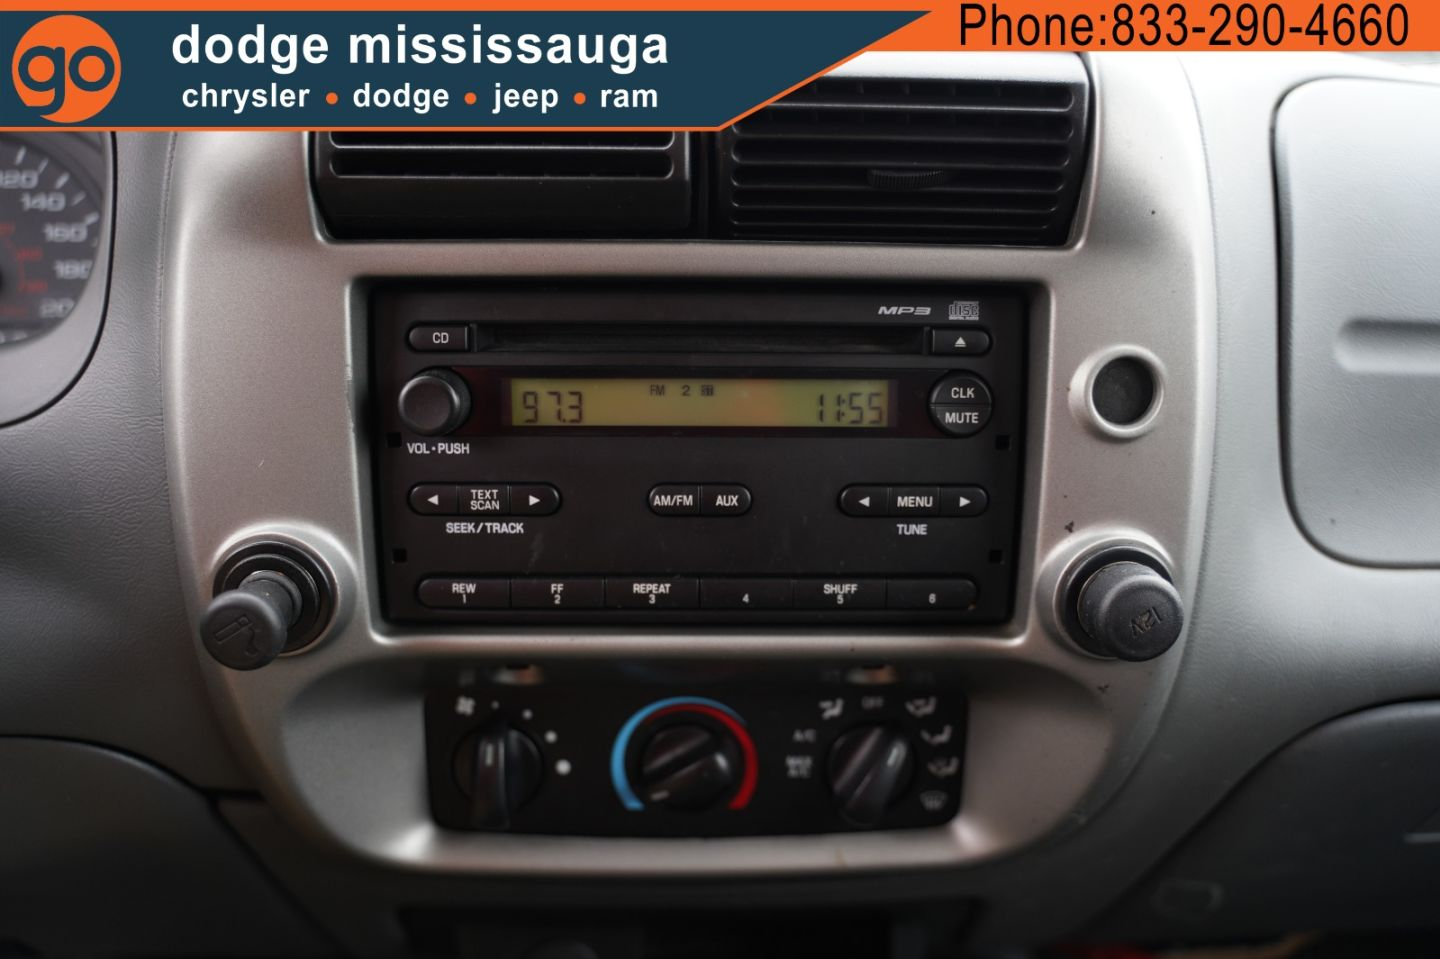 2008 Ford Ranger XL for sale in Mississauga, Ontario